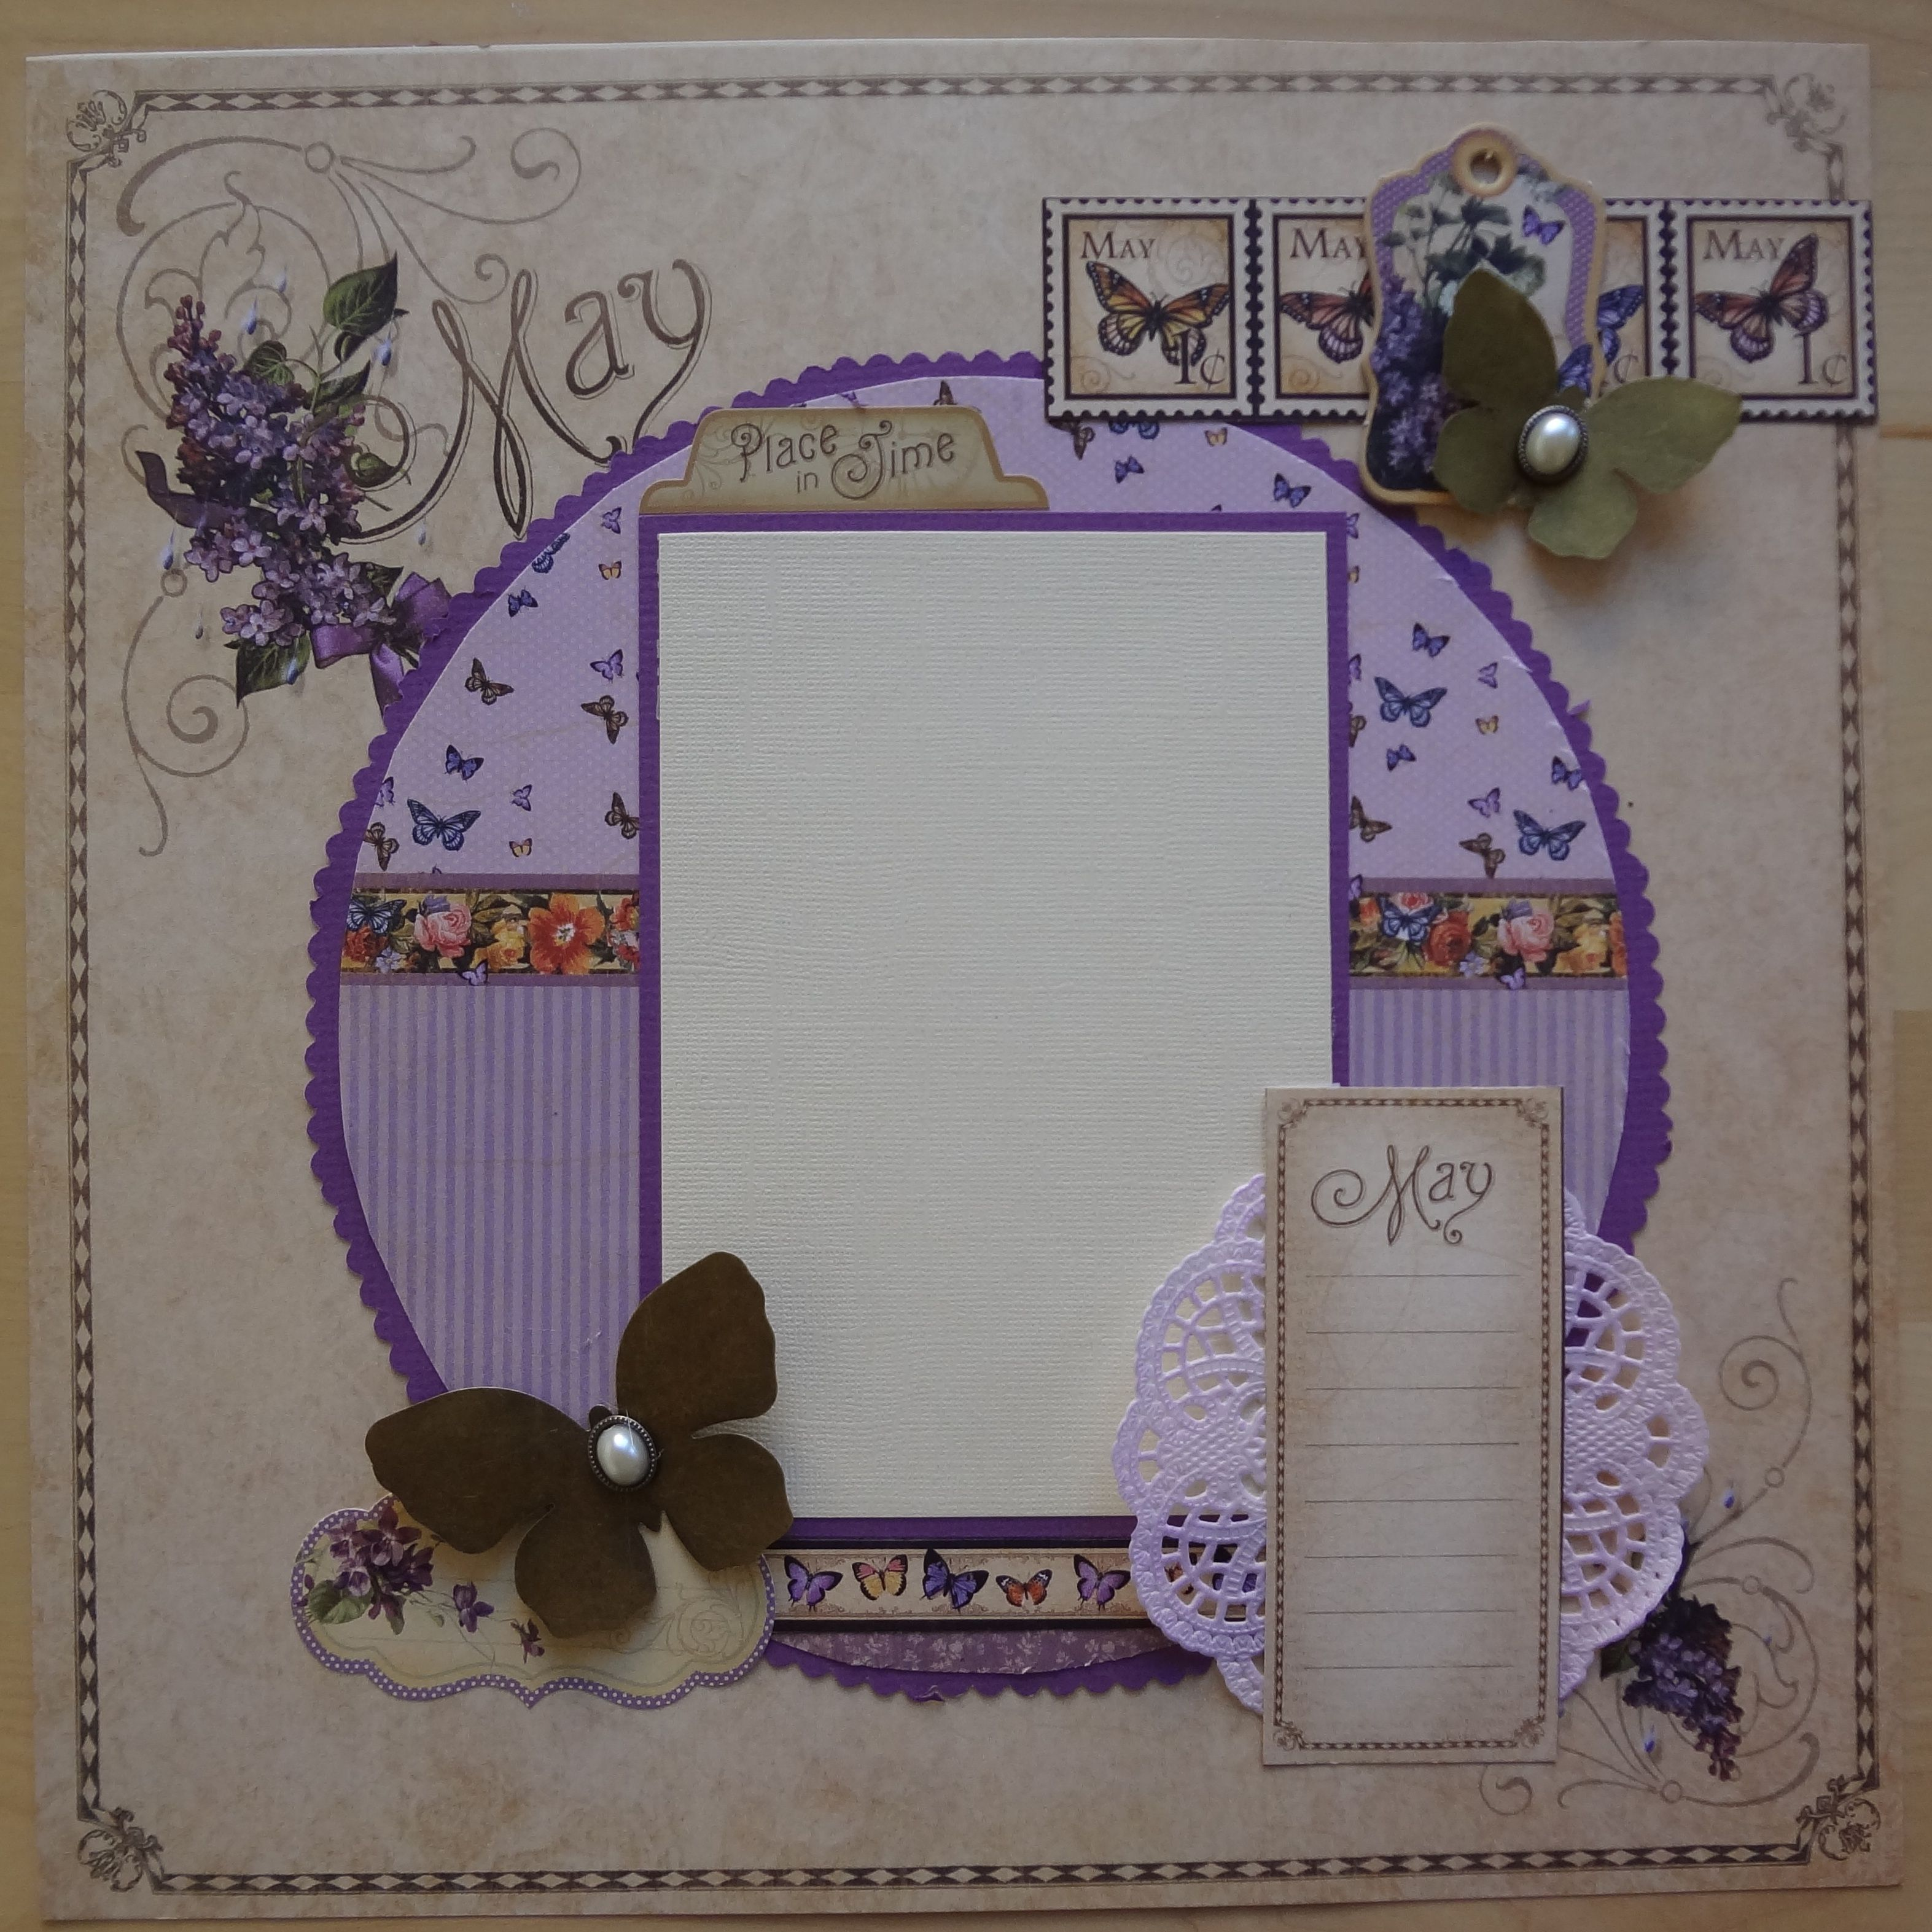 This is my take on this May layout with Place in Time from Graphic 45.